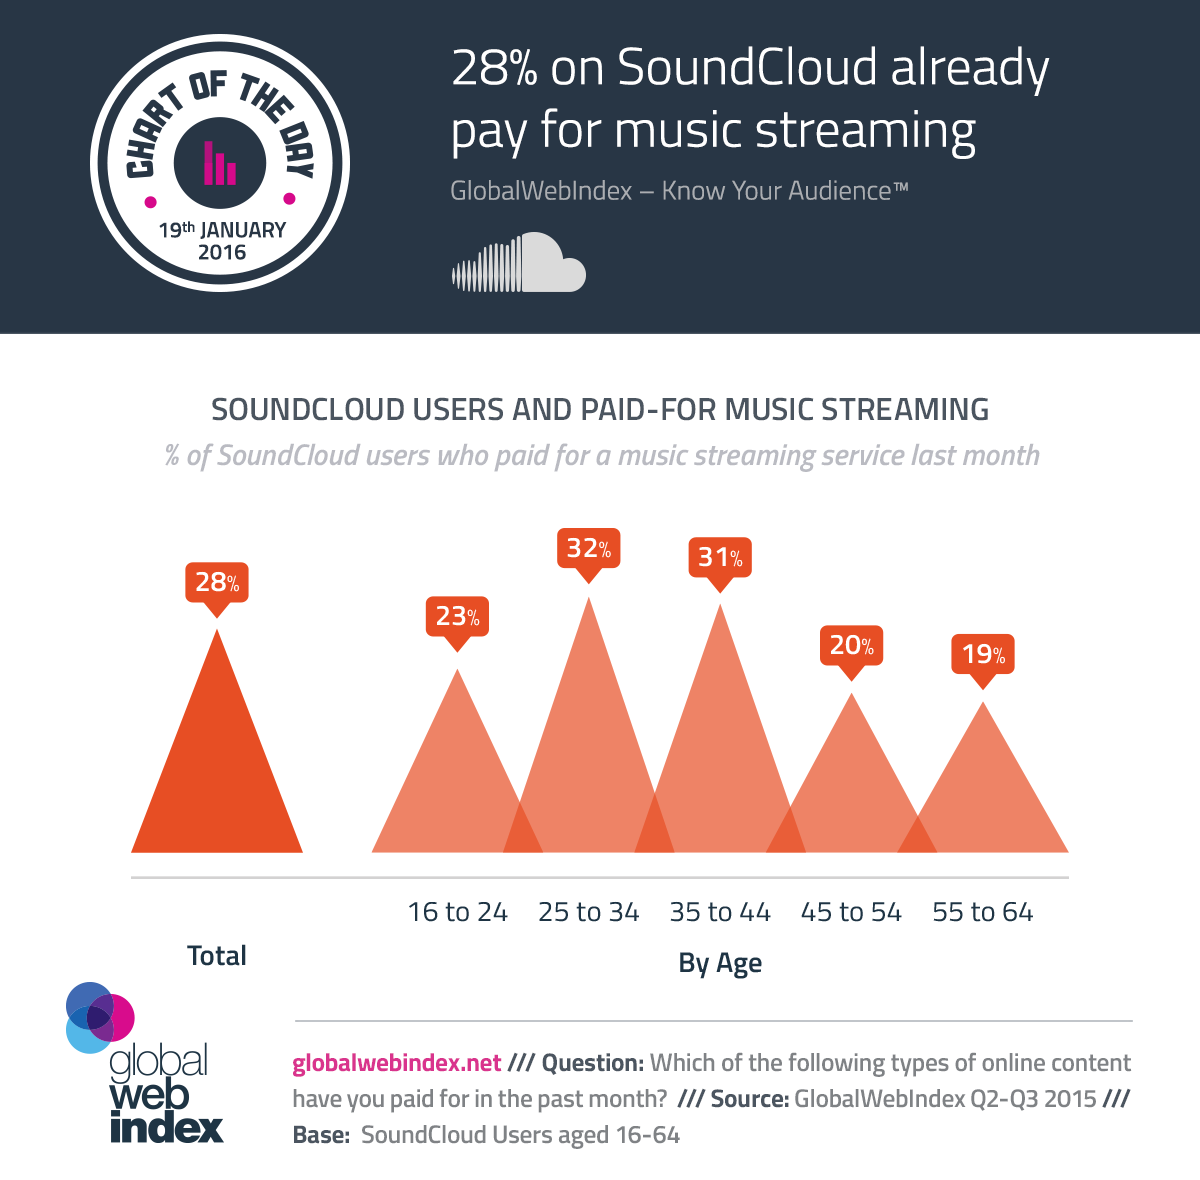 28% on SoundCloud already pay for music streaming